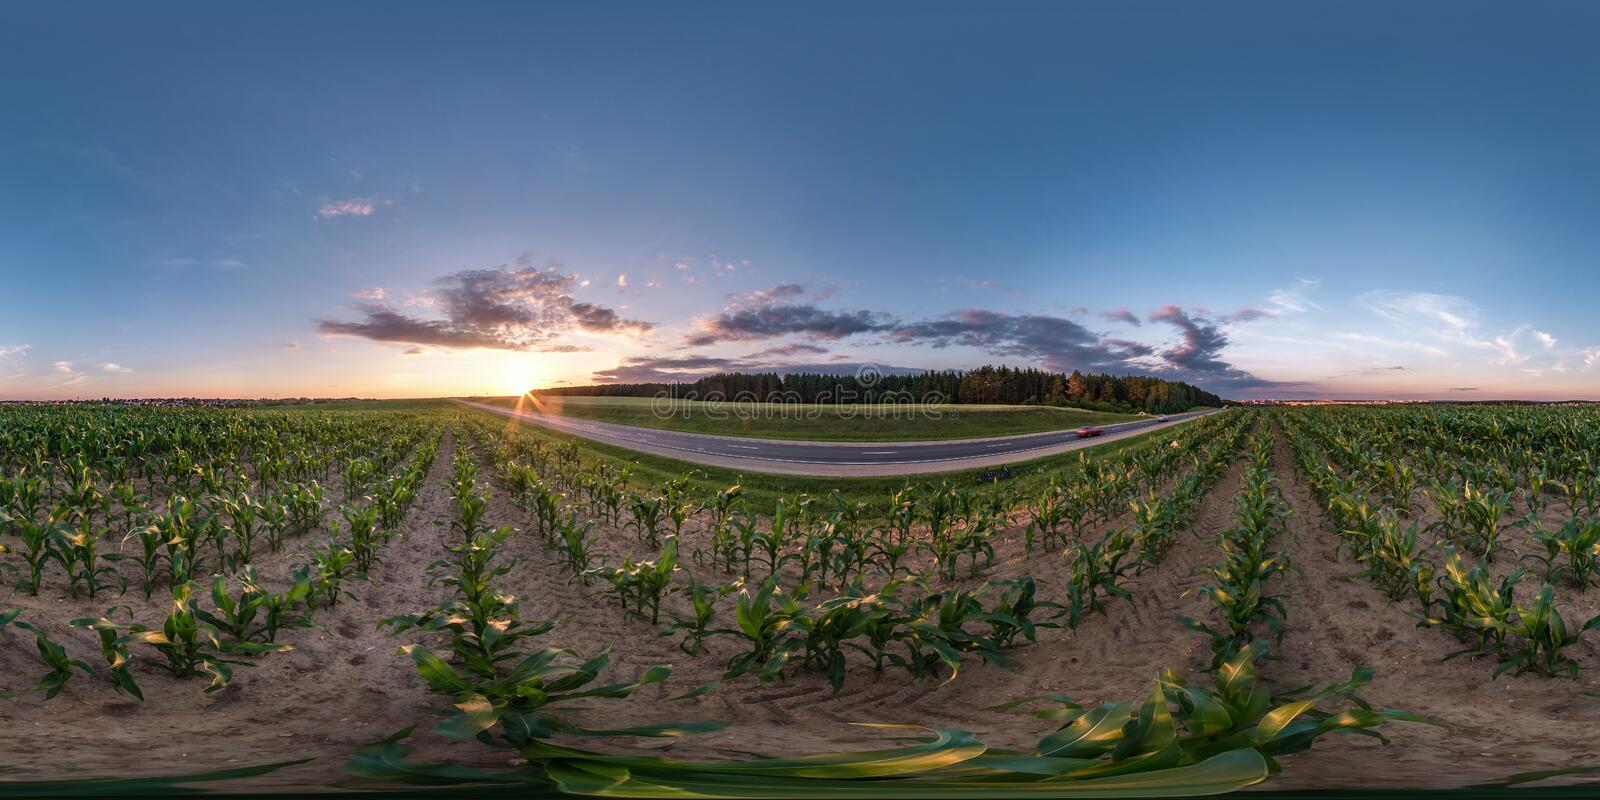 Full seamless spherical hdri panorama 360 degrees angle view near asphalt road among cornfield in summer evening sunset in. Equirectangular projection, ready VR stock photo